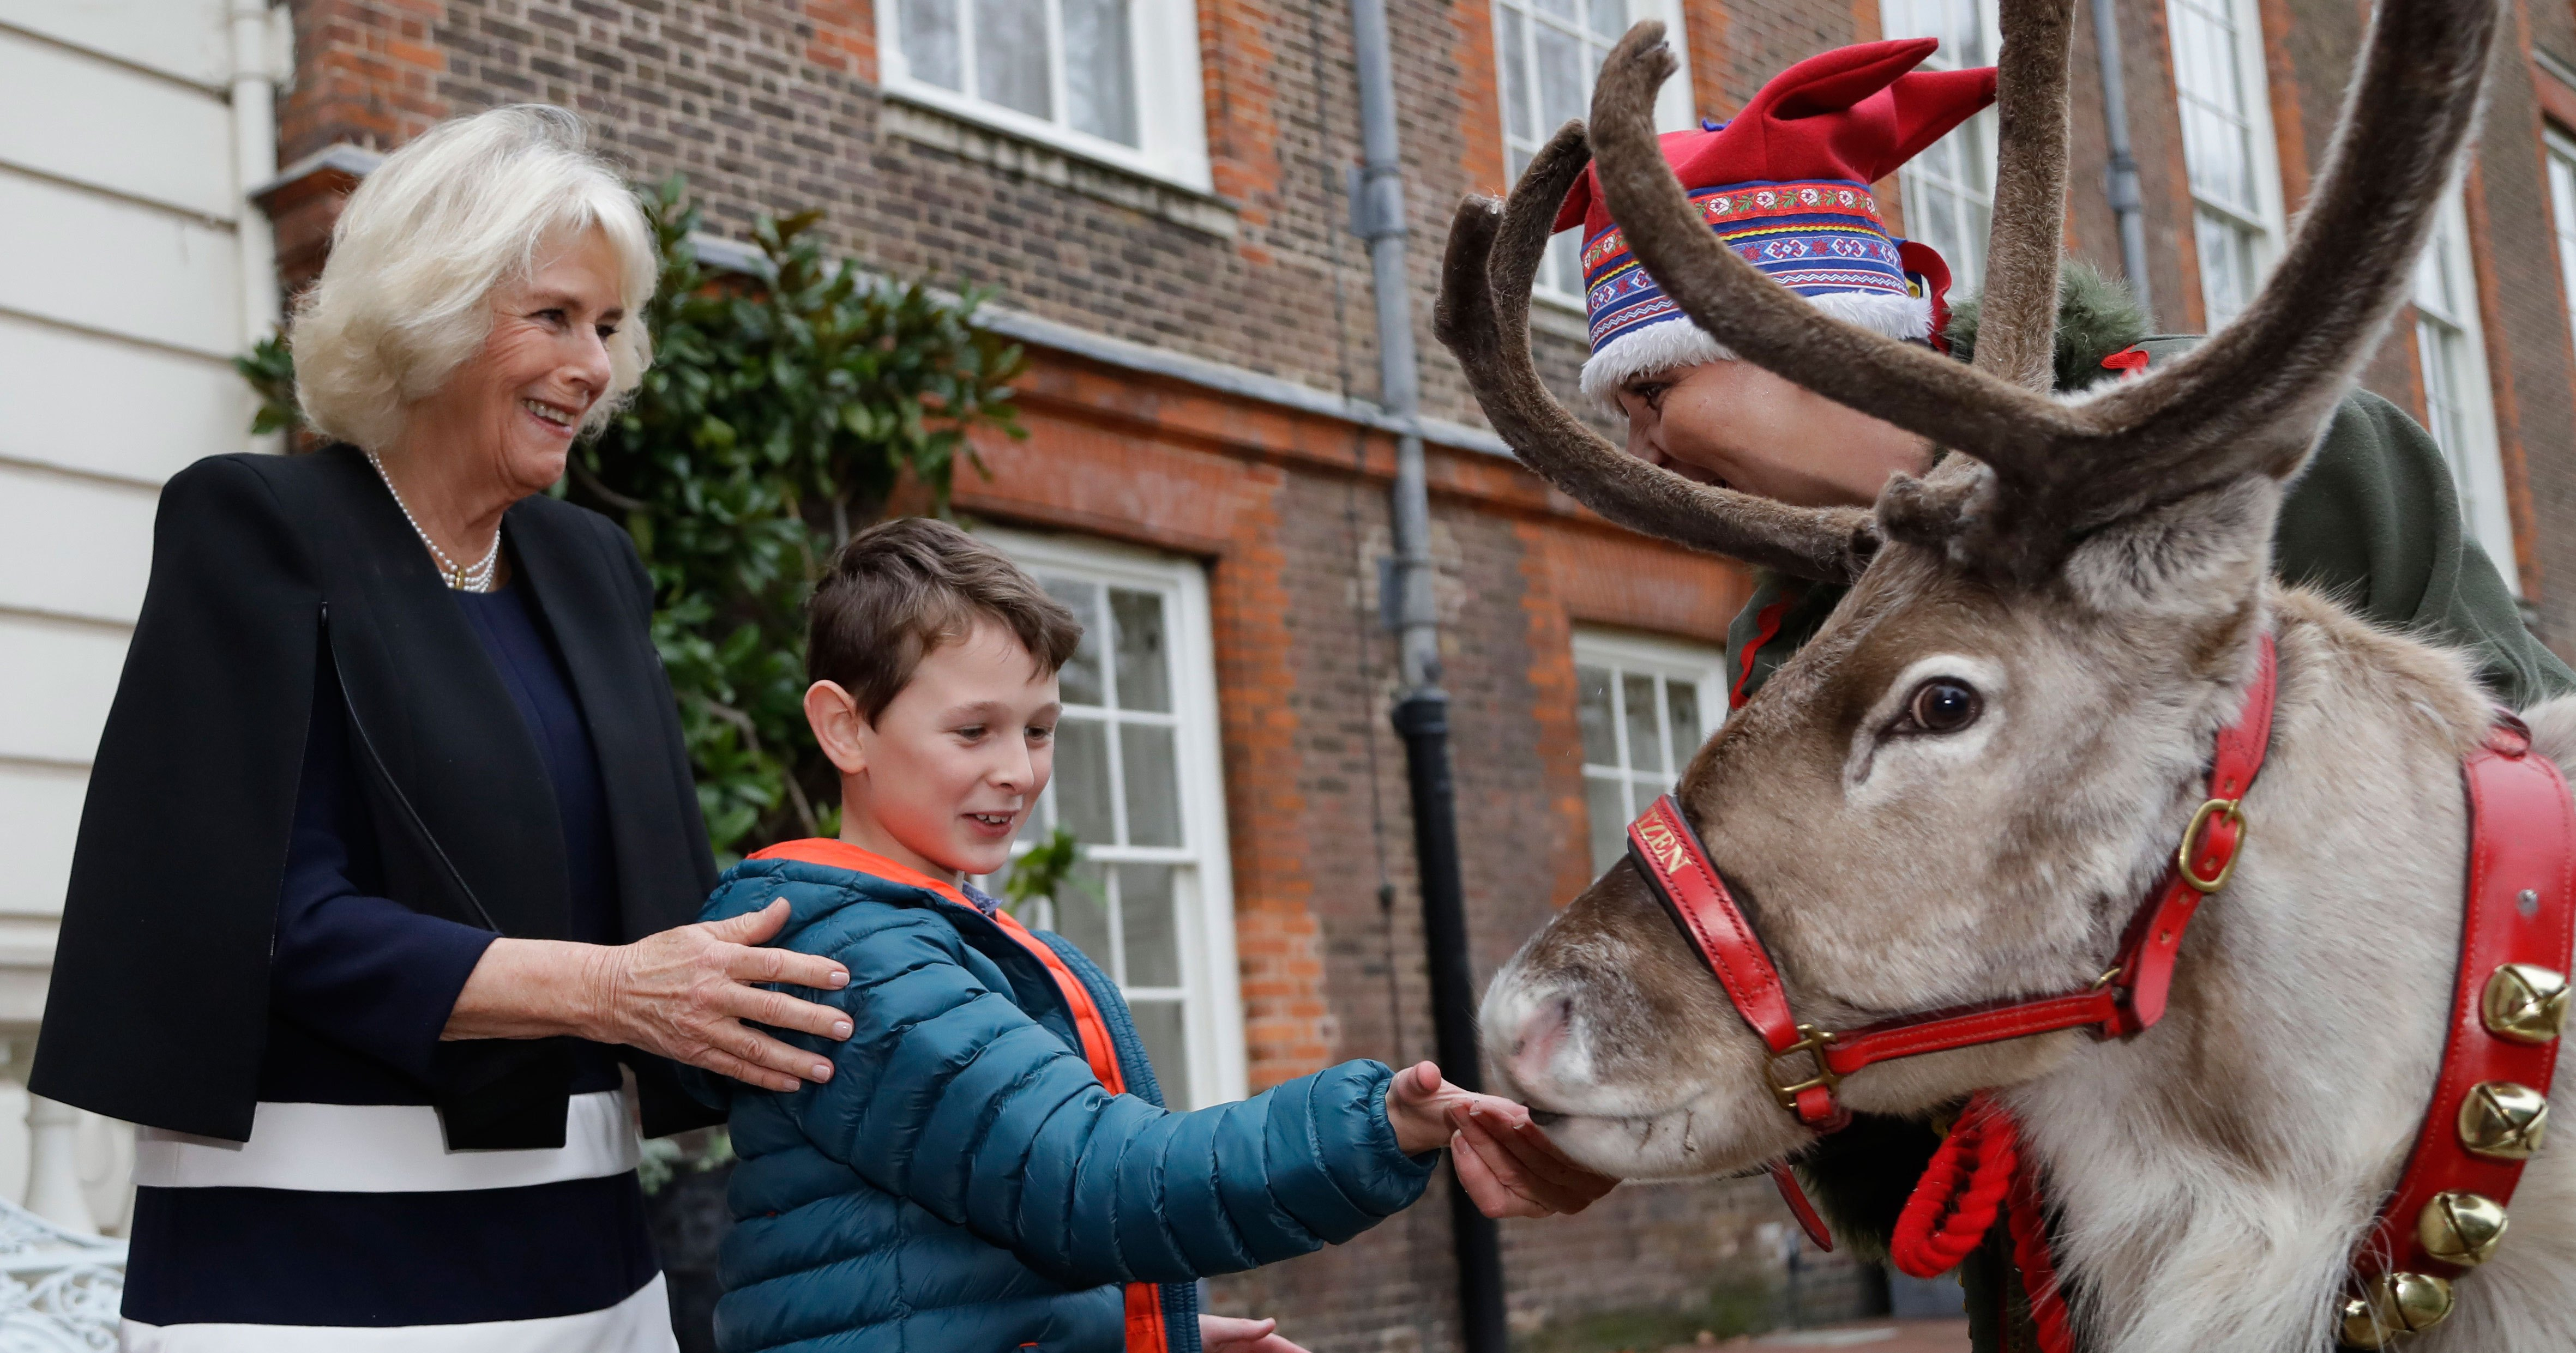 Camilla Hosts Christmas Party for Sick Kids, Surprises Them With Reindeer